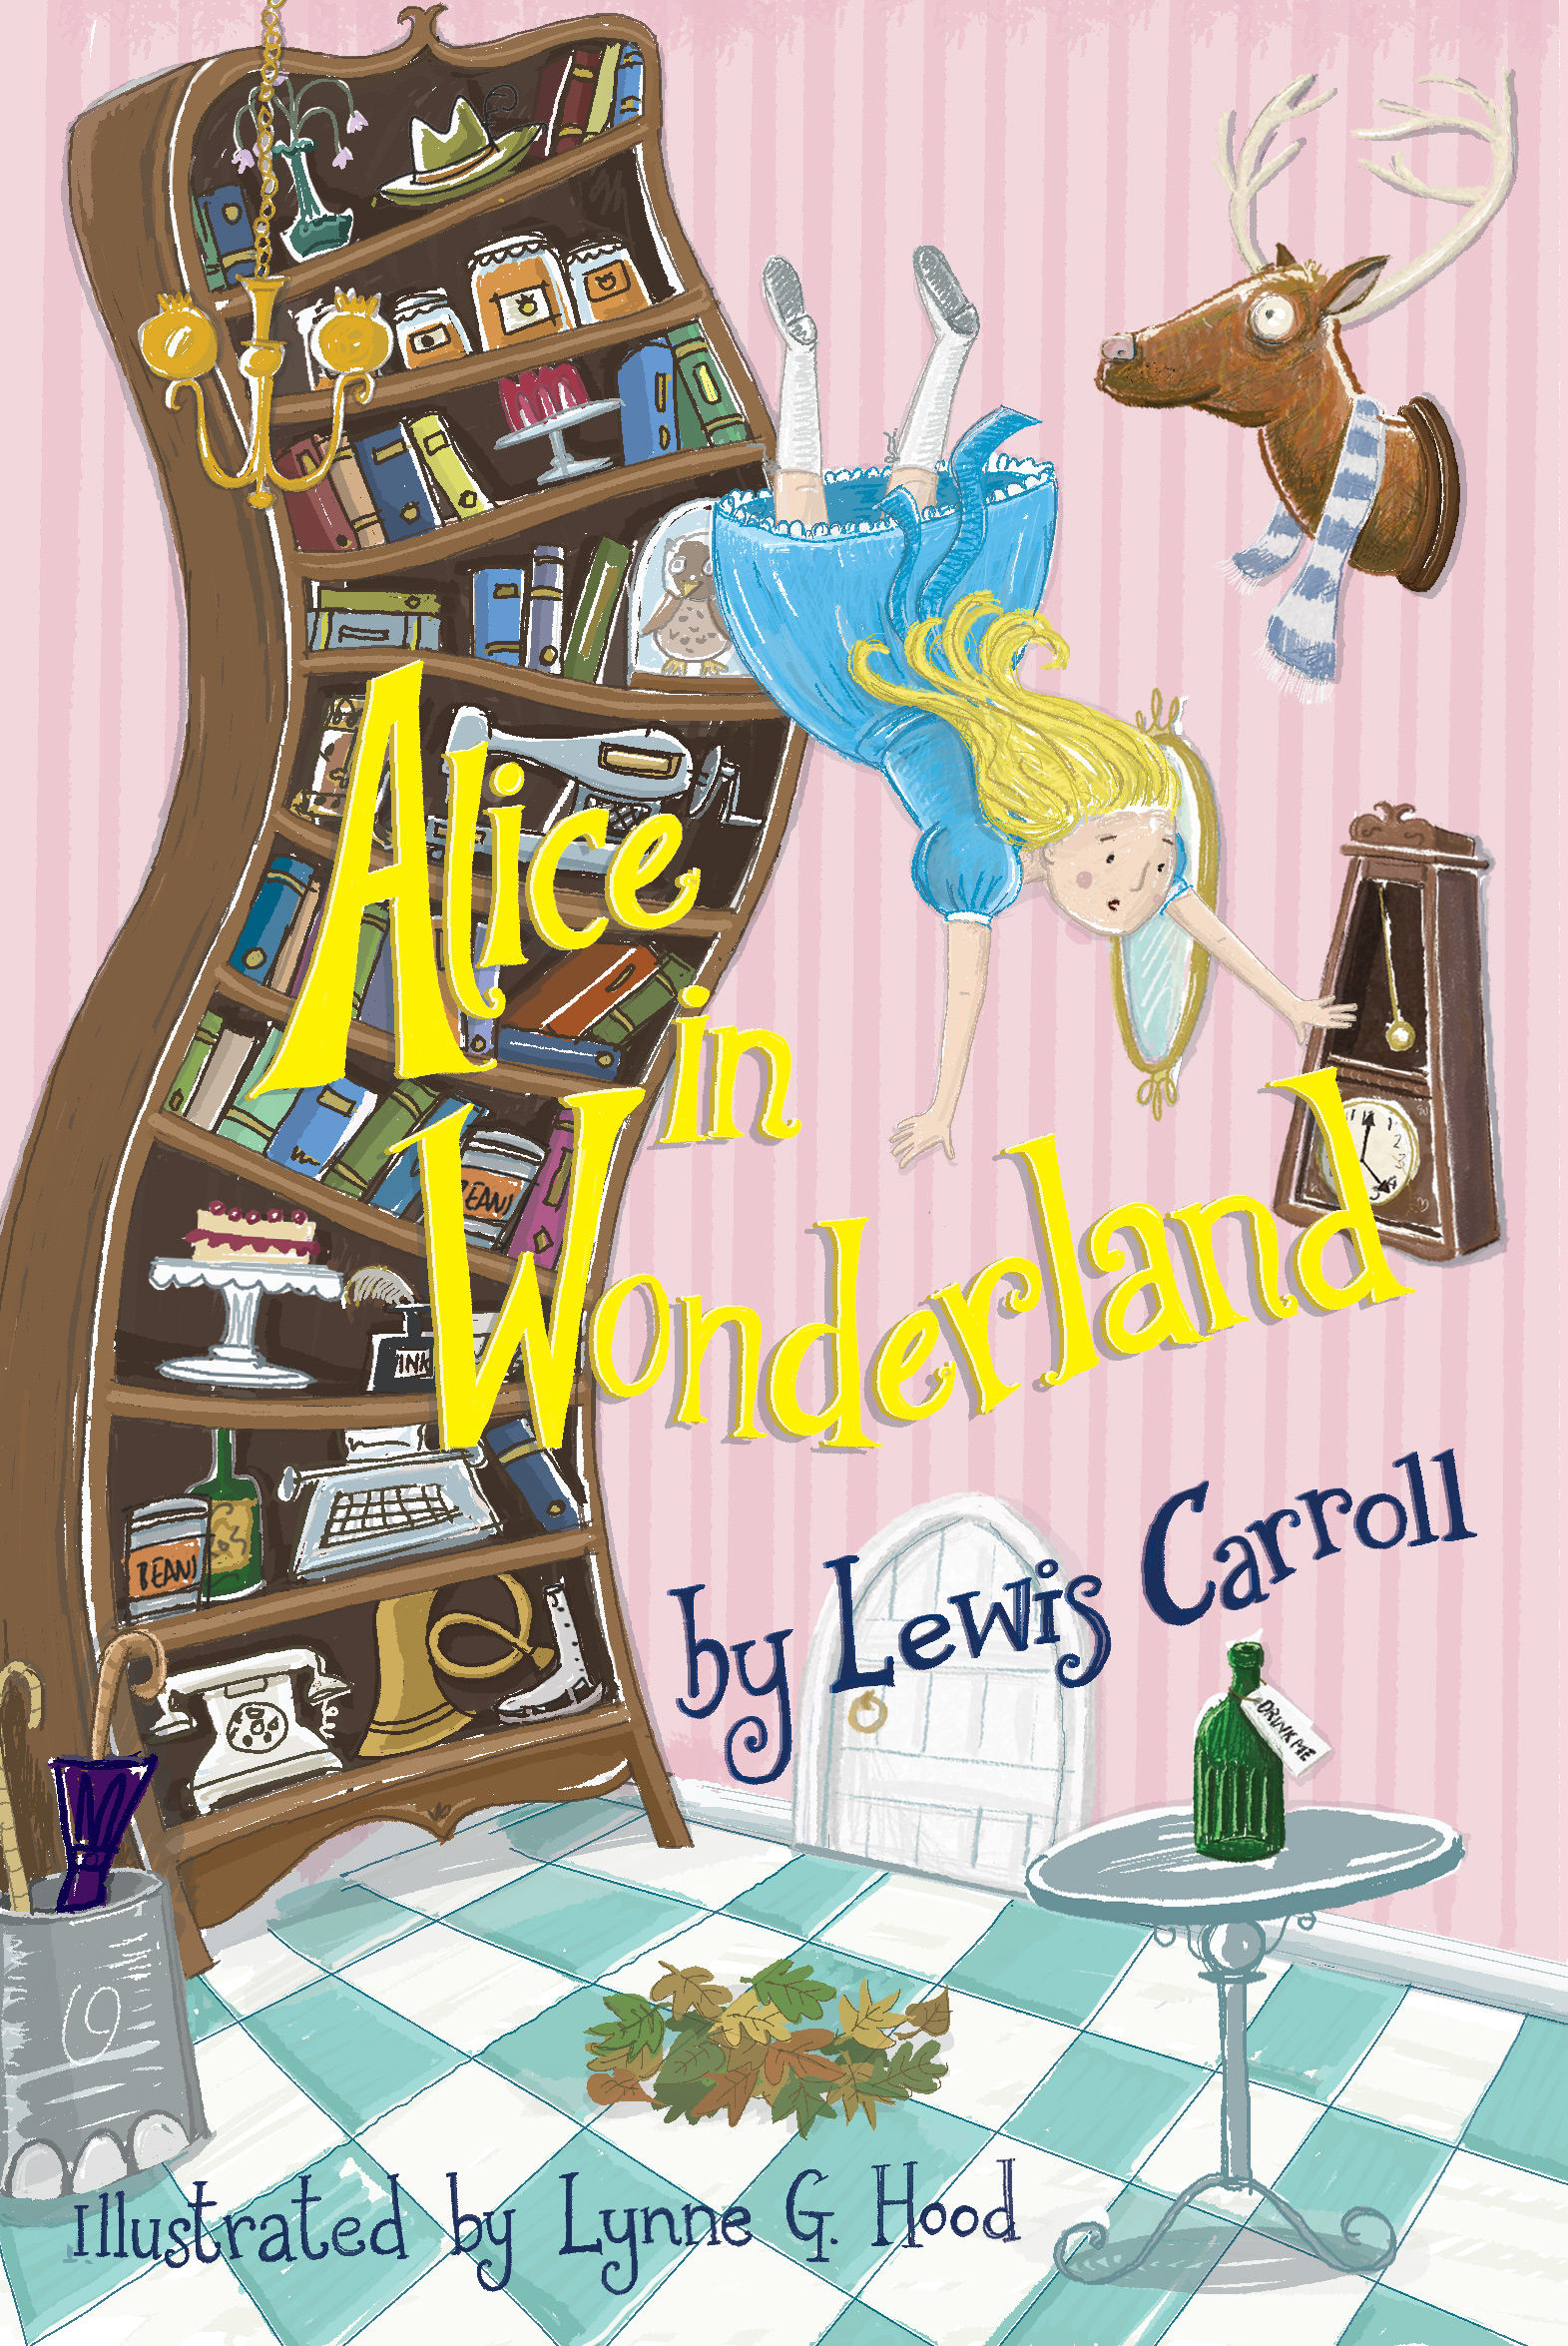 Alice in Wonderland cover design